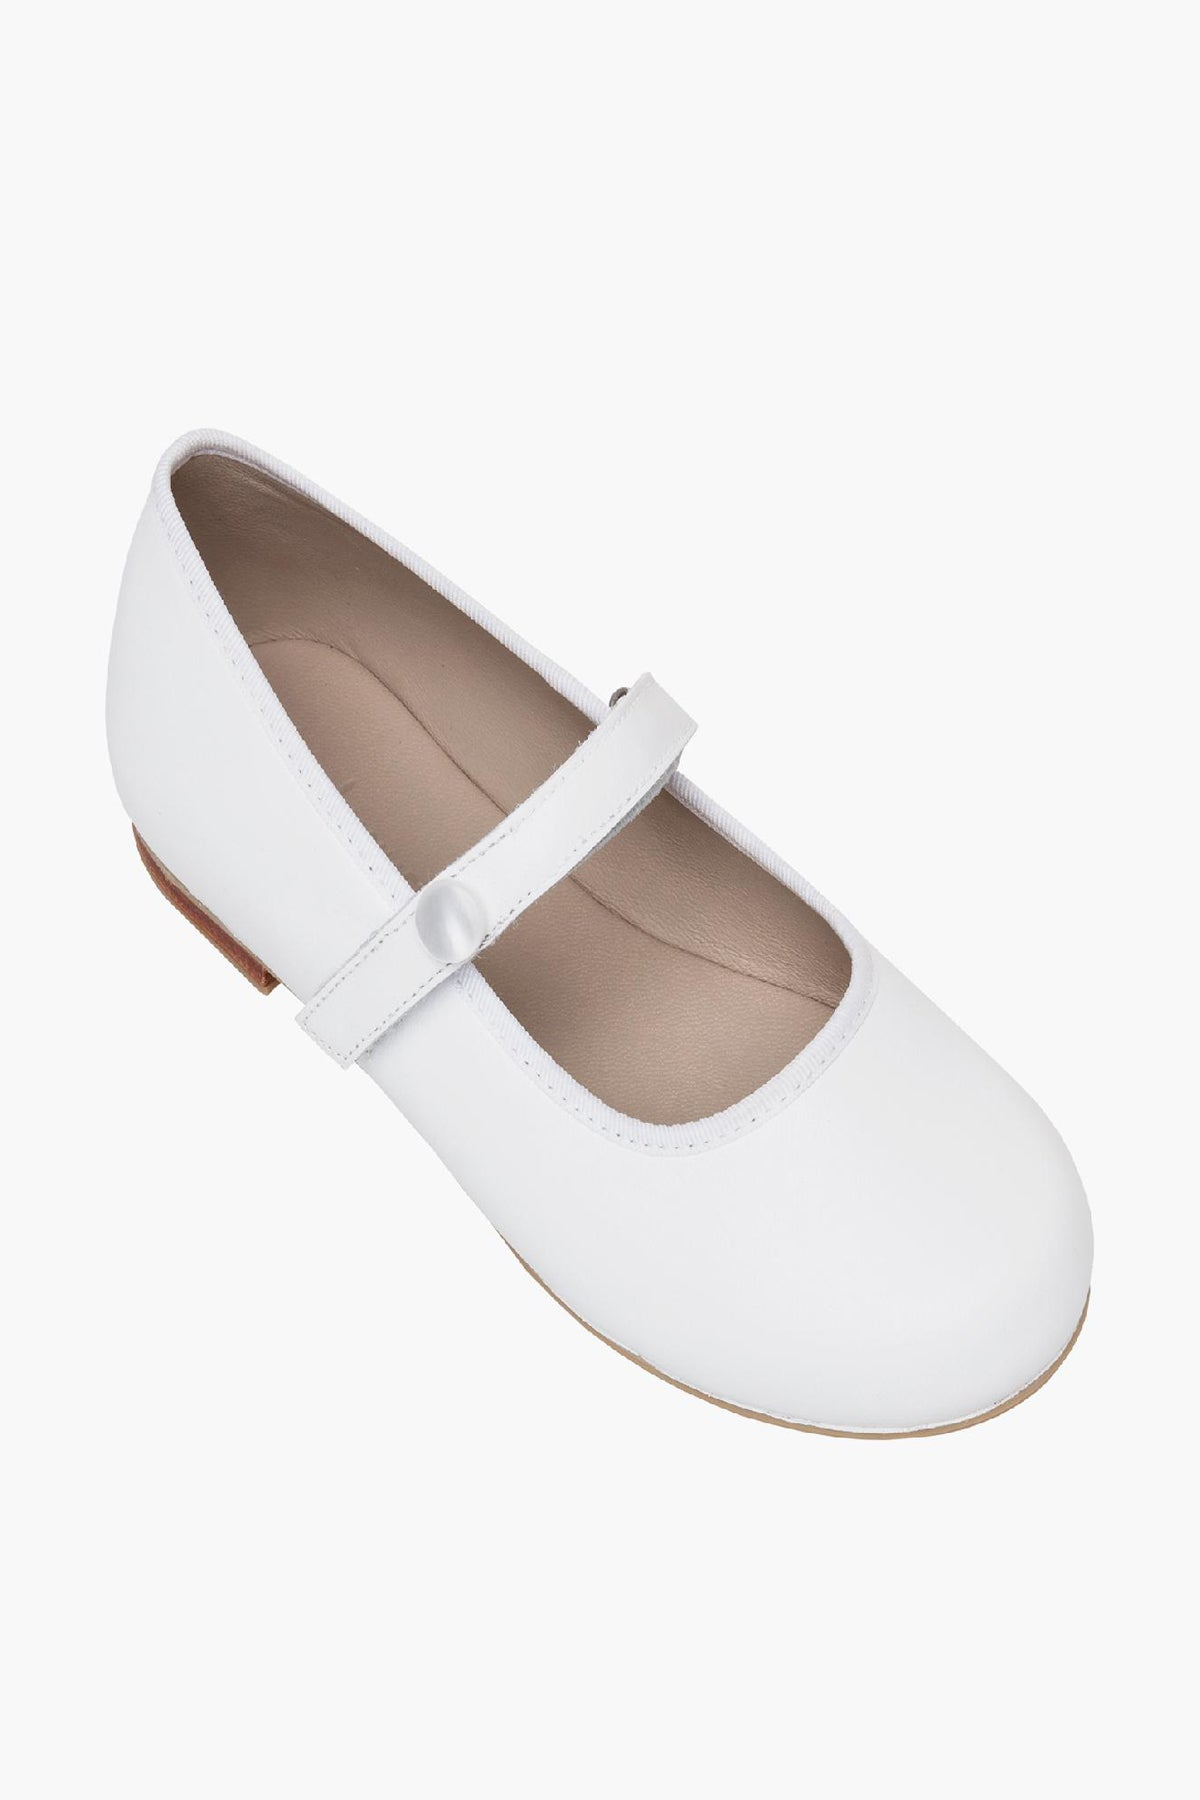 Elephantito Princess Mary Jane Flat - White